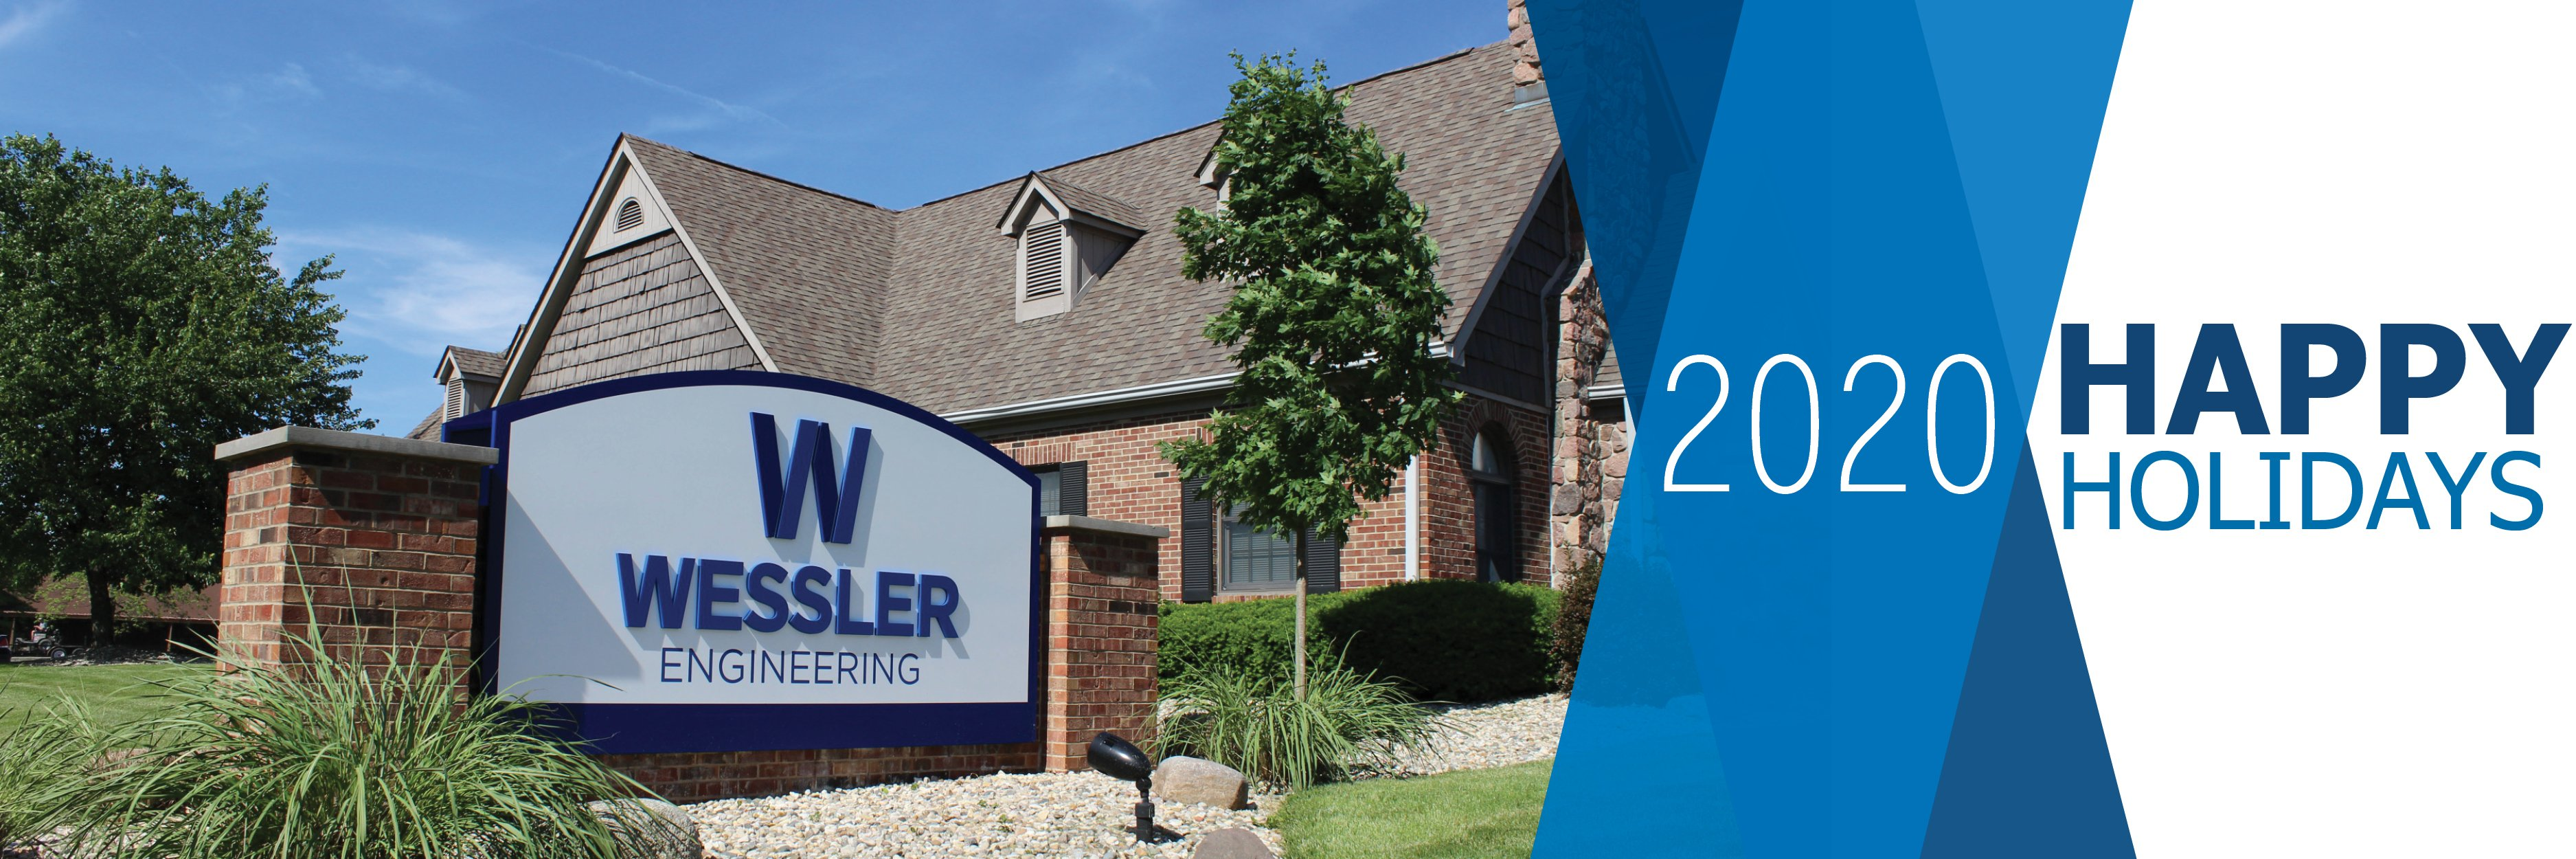 Happy Holidays from Wessler Engineering